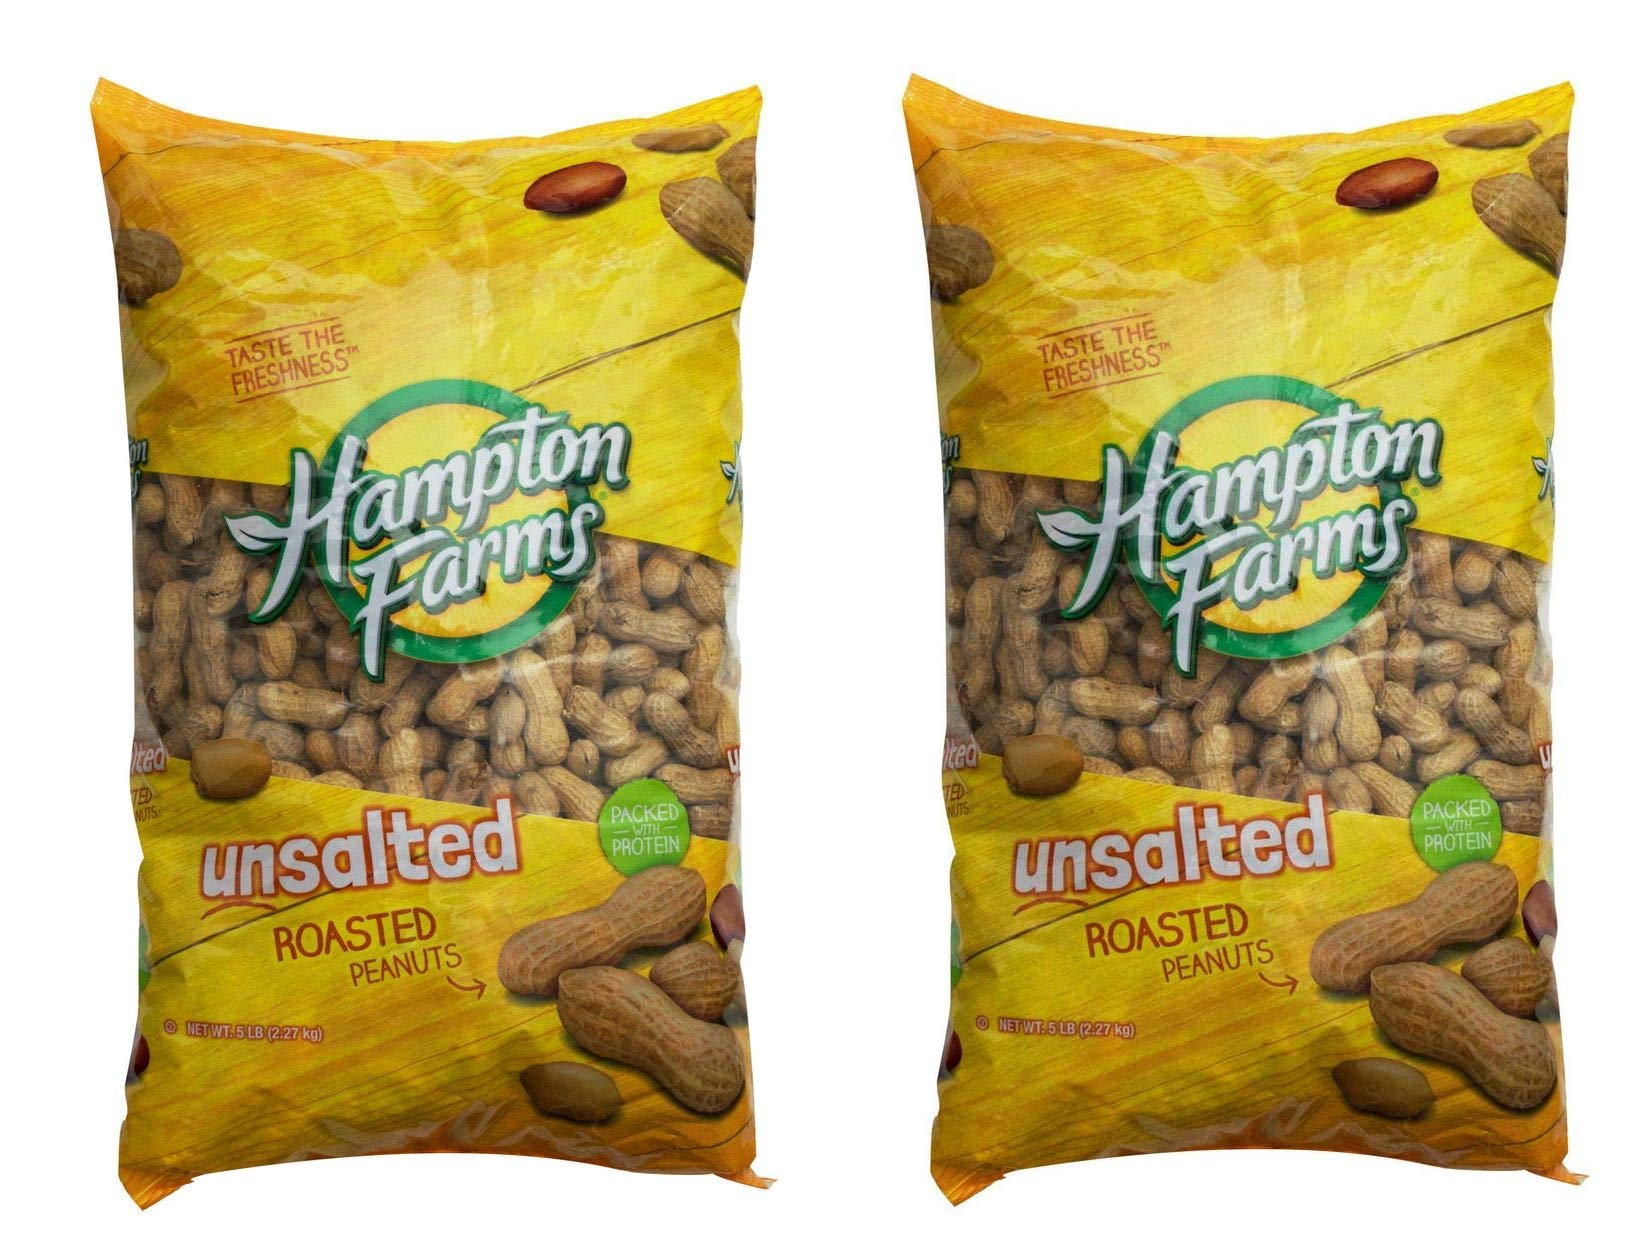 Product of Hampton Farms Unsalted Roasted In-Shell Peanuts, 5 lbs. [Biz Discount (Two Pack)